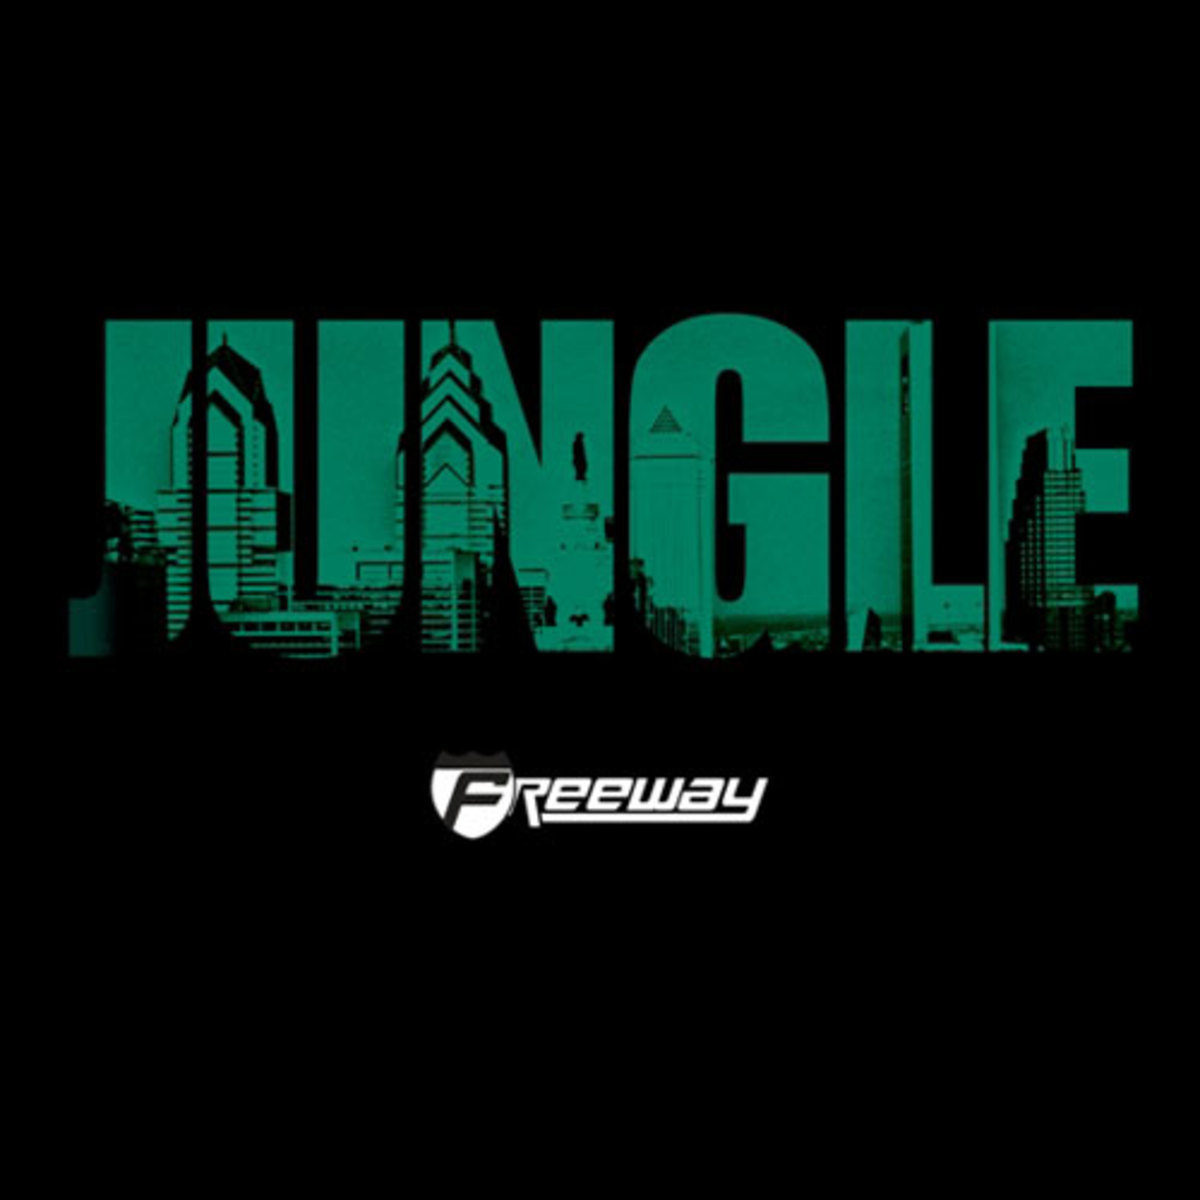 freeway-jungle.jpg